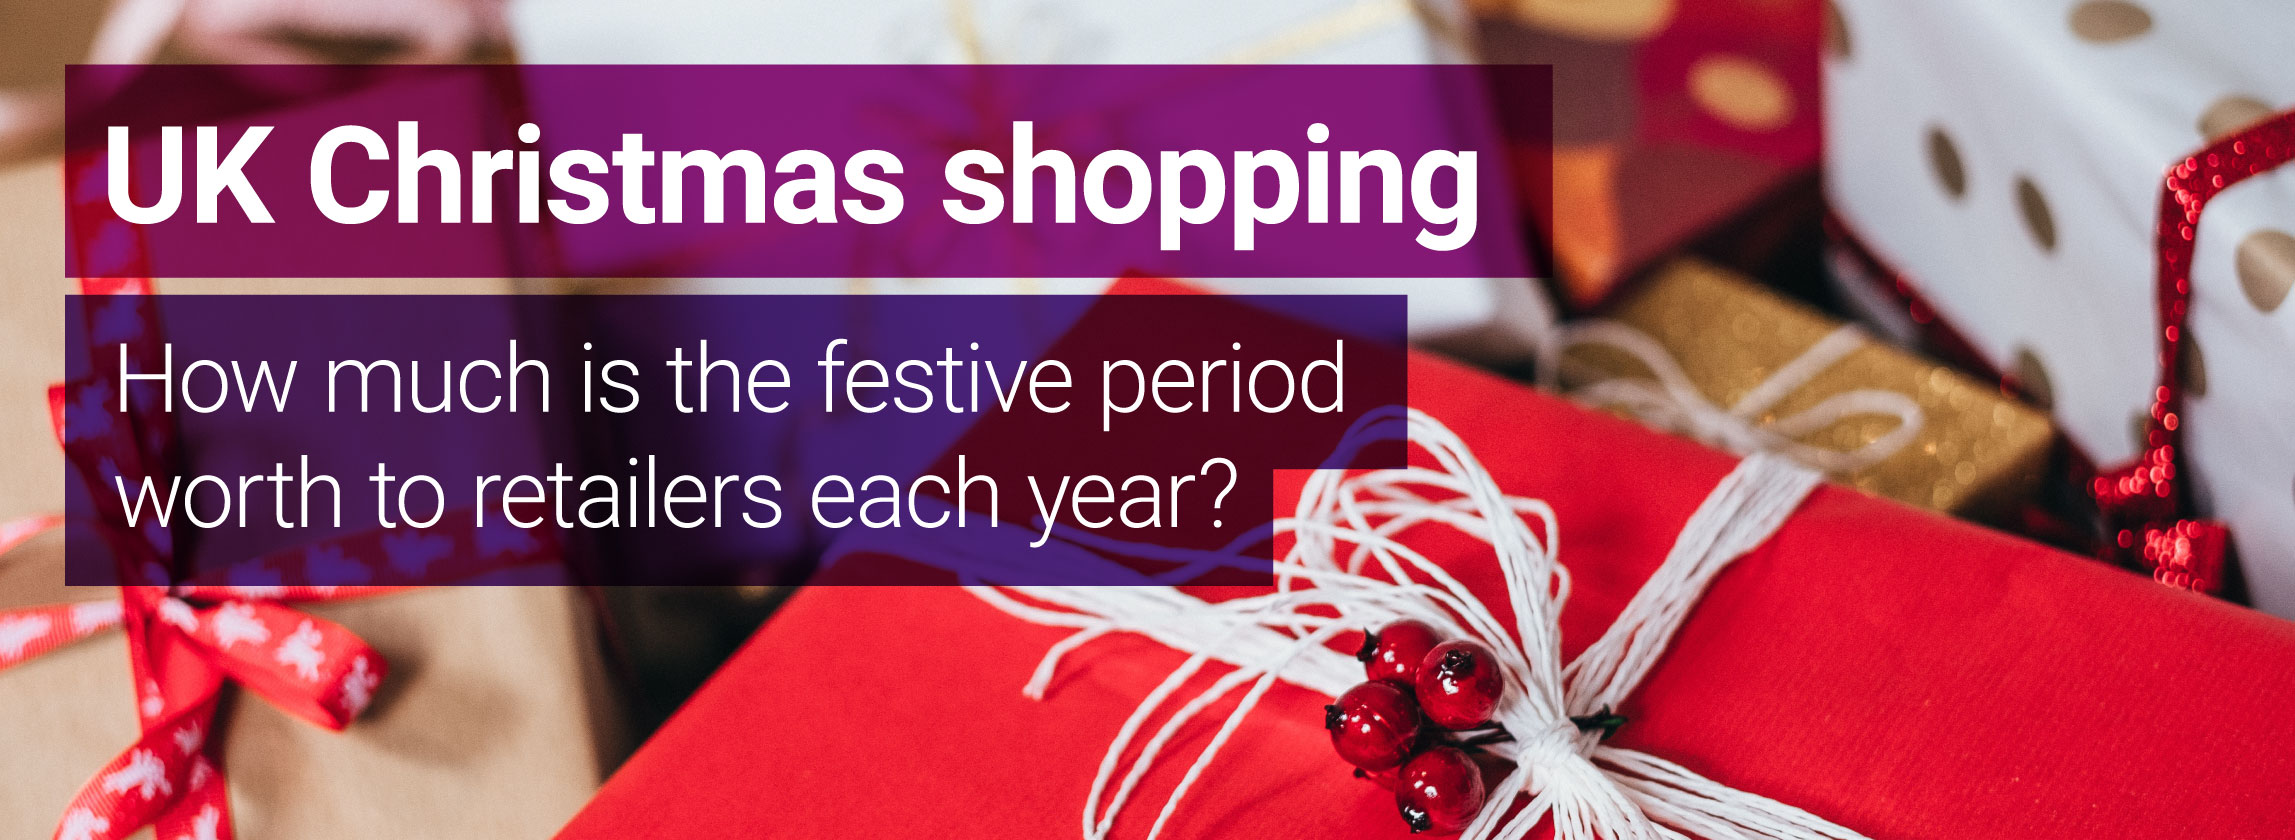 UK Christmas shopping image with wrapped festive presents